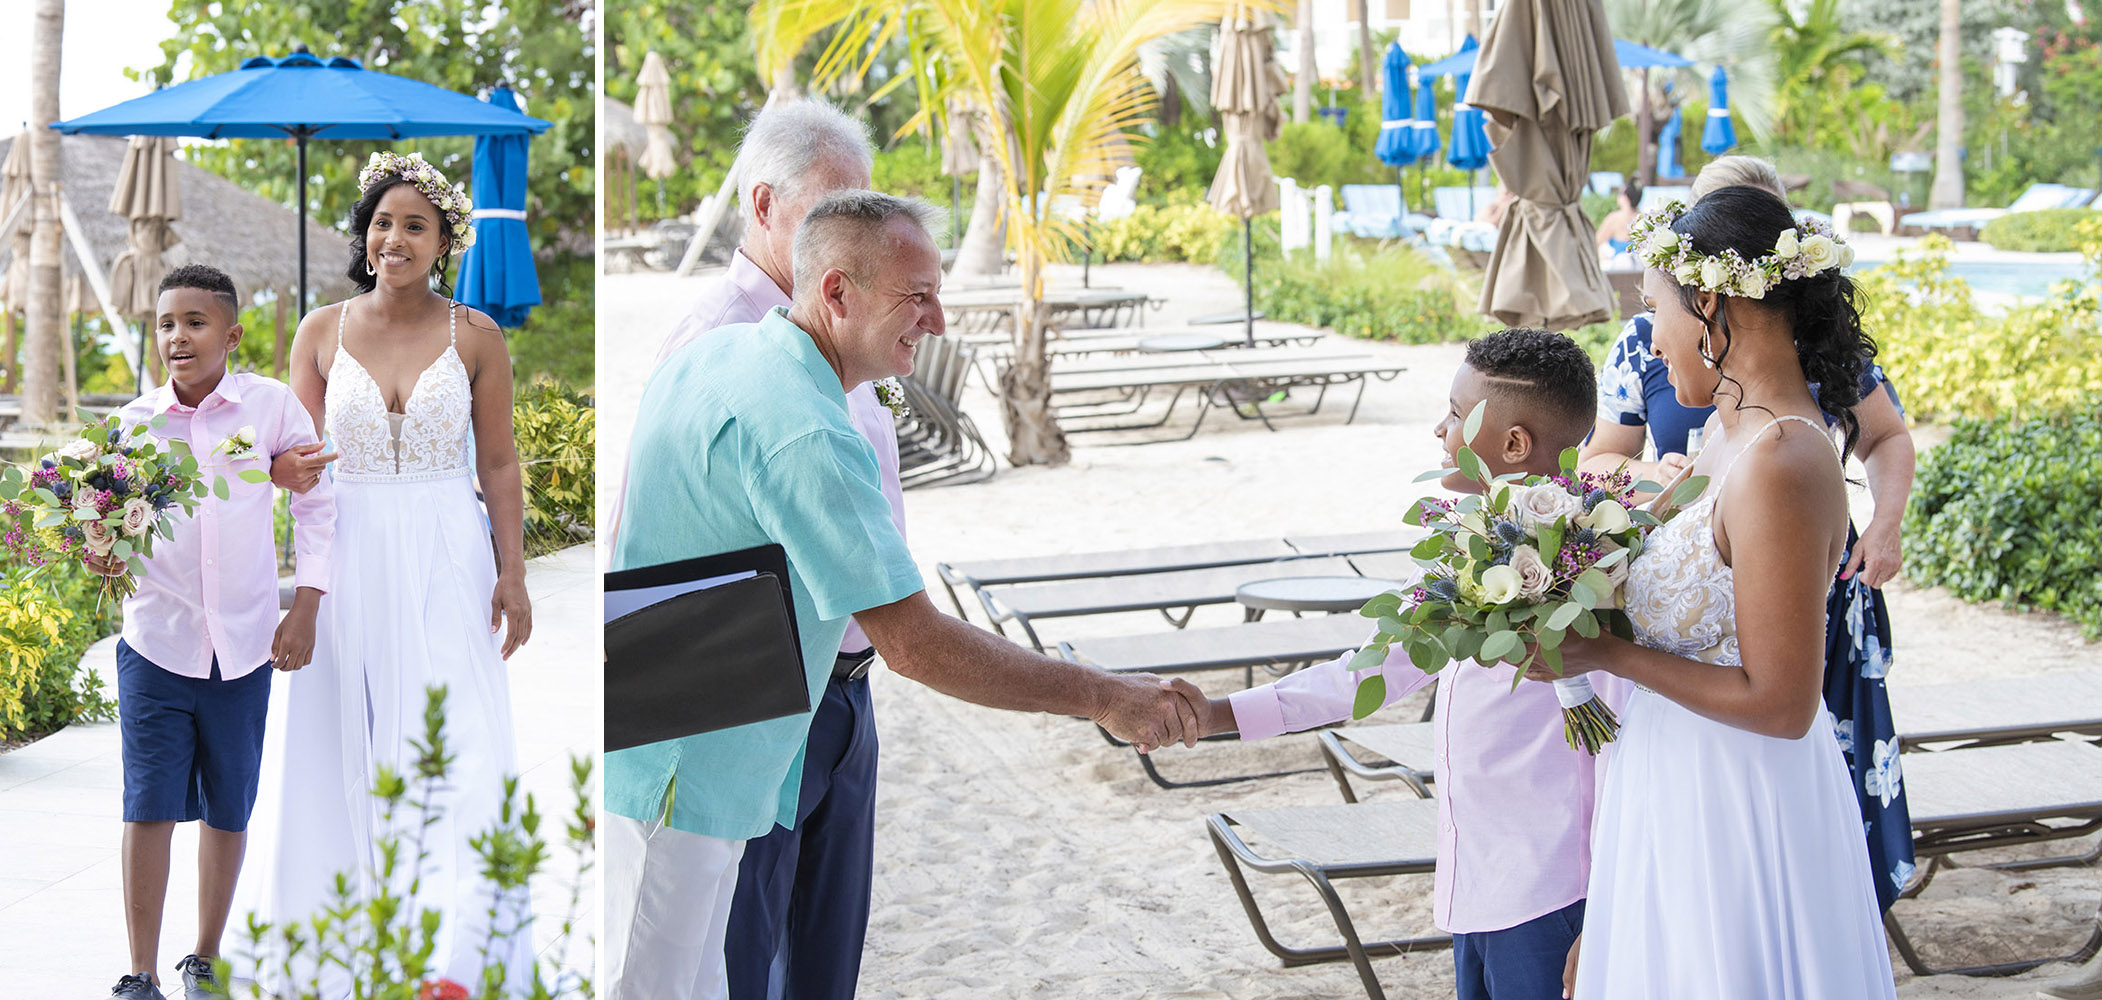 Picture This Studios and Heather Holt Photography captured this beautiful Cayman Islands Wedding held at the Meridian.